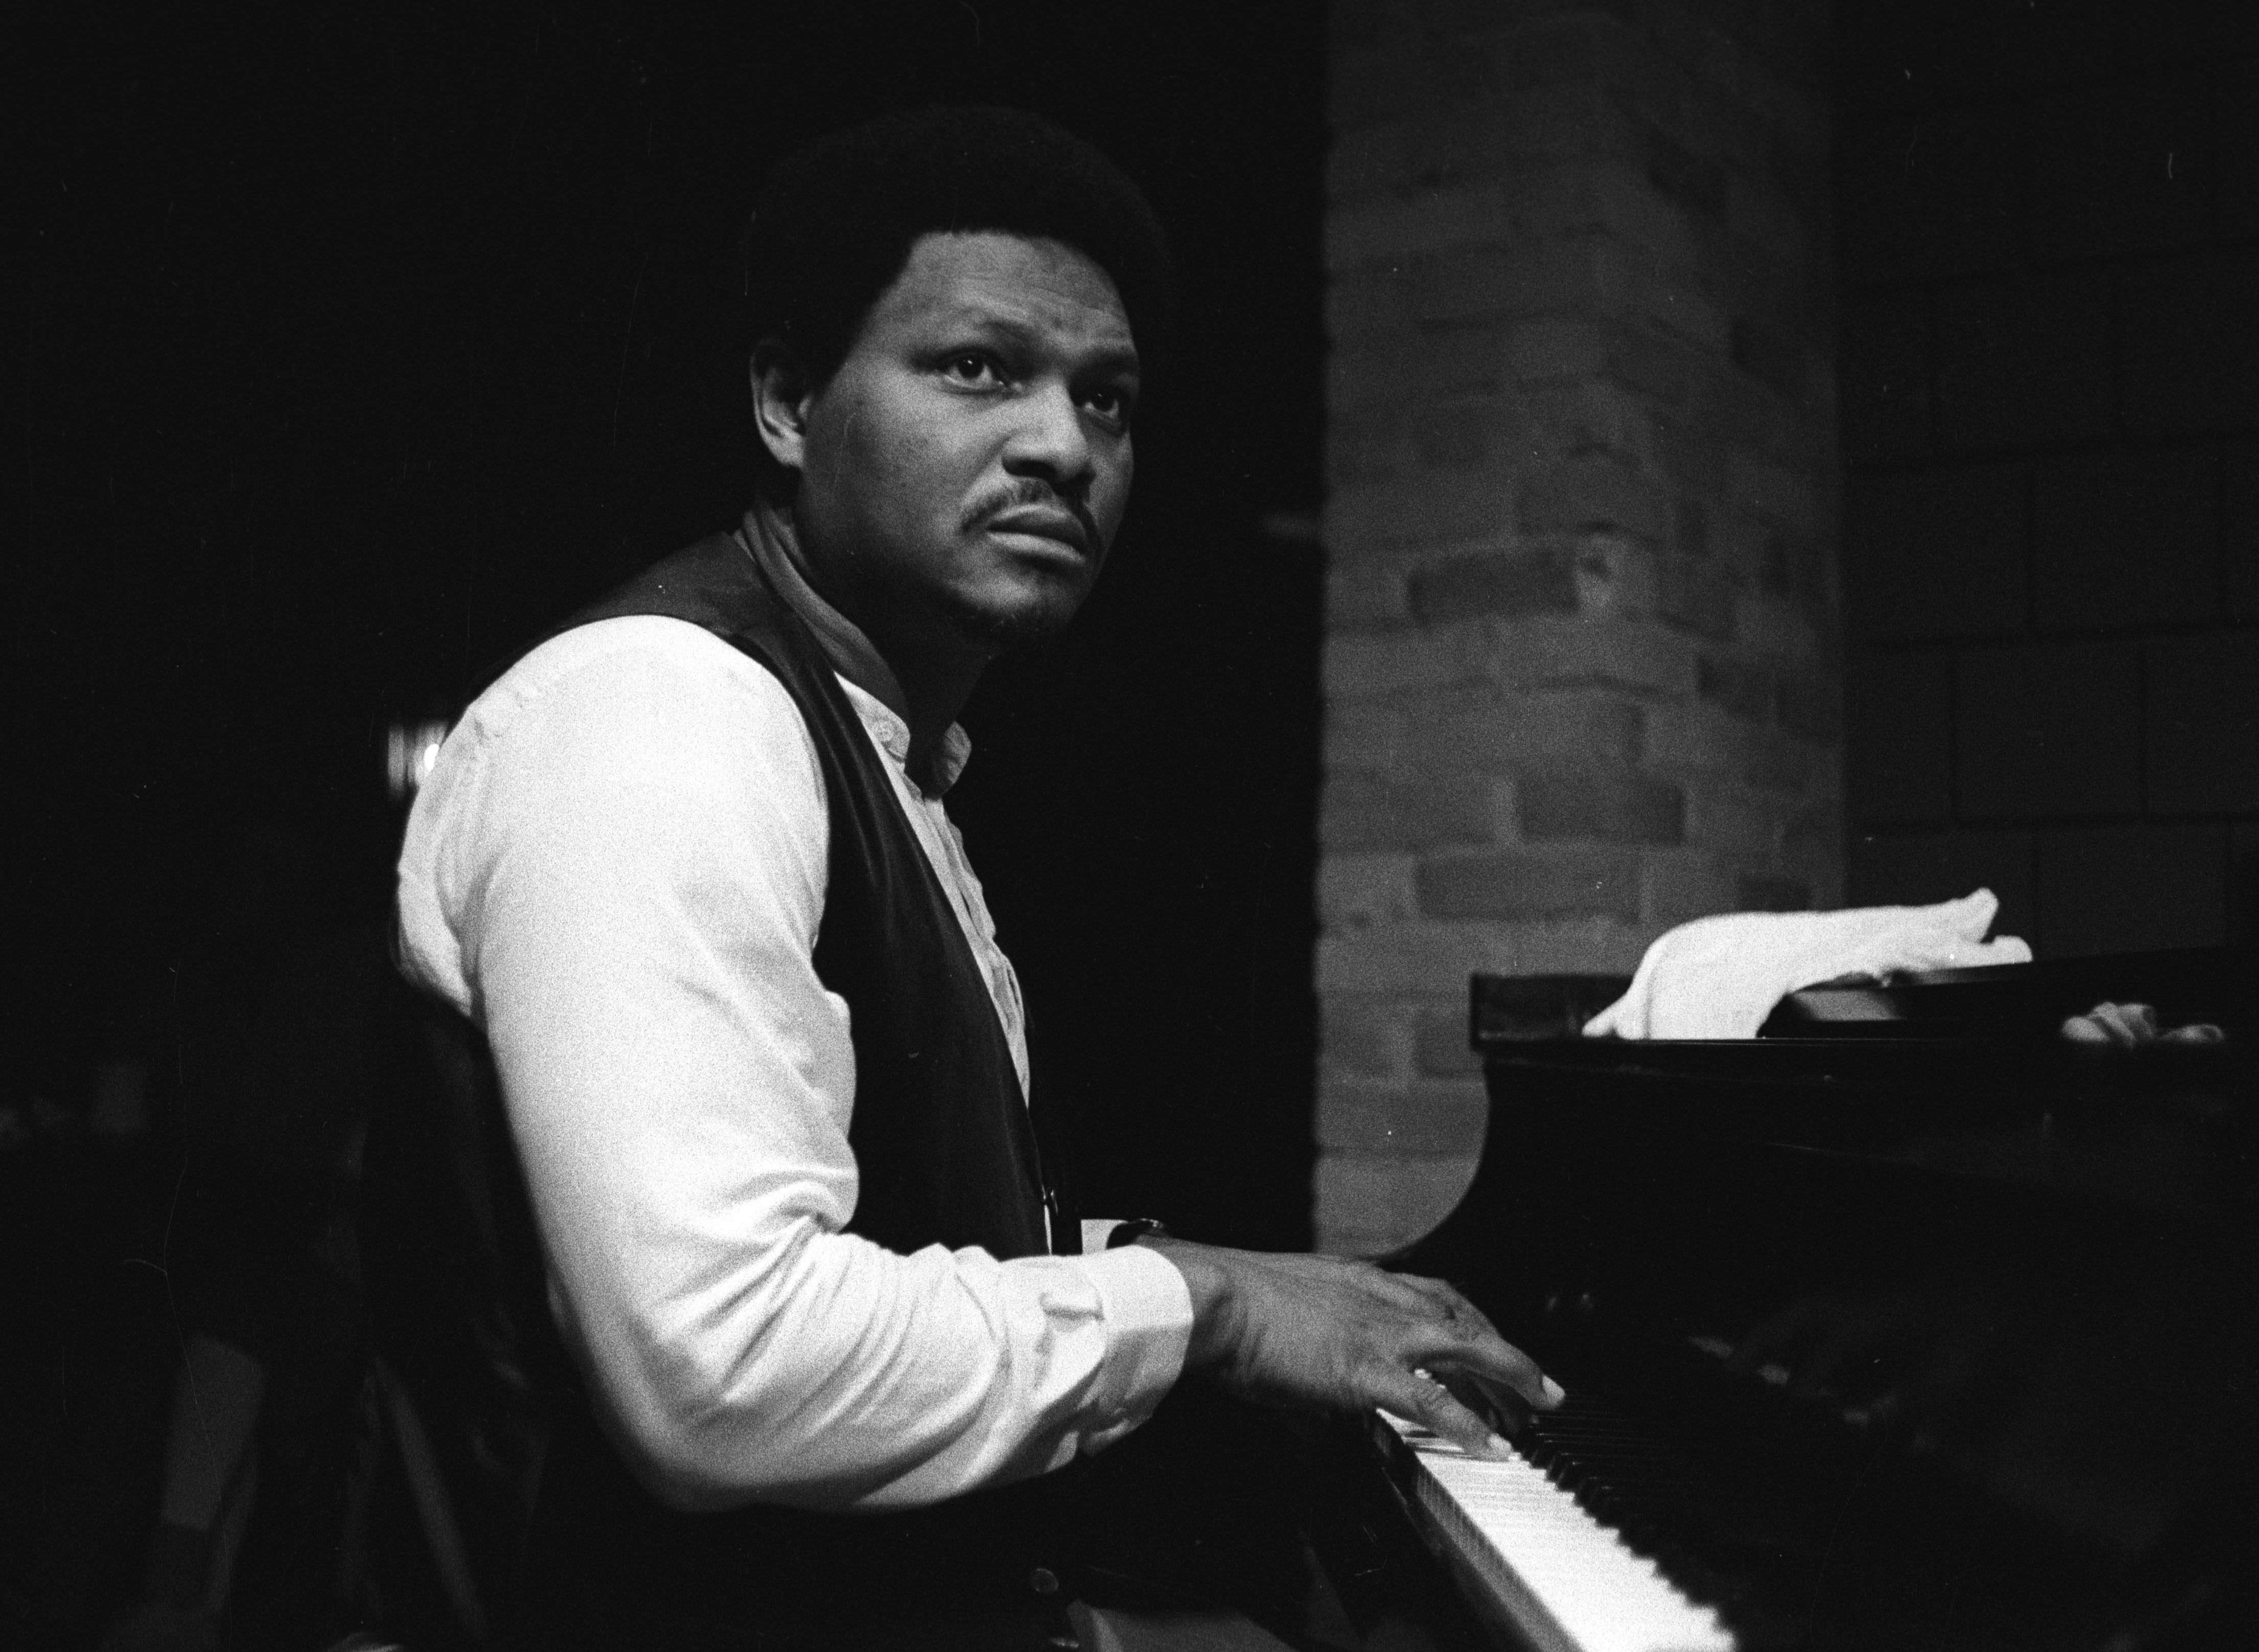 McCoy Tyner at the Earle, November 1978 image